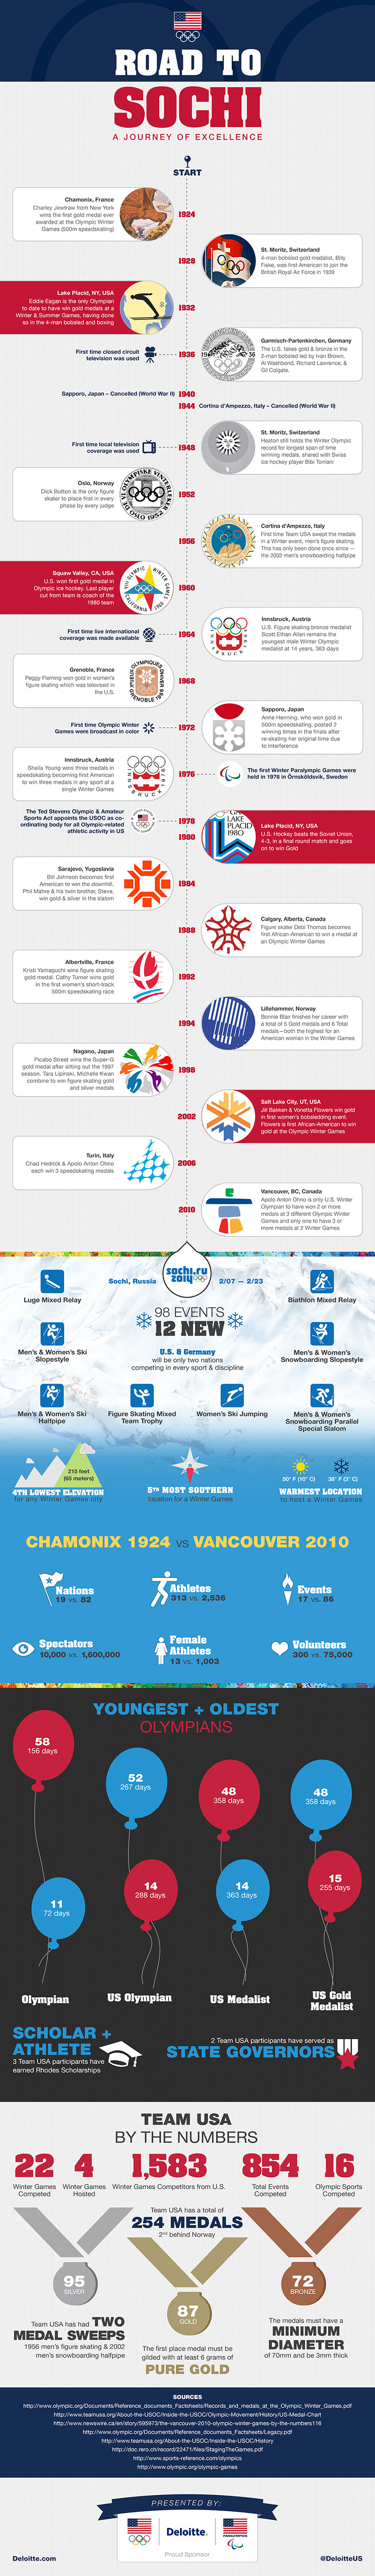 Road To Sochi Infographics The US and Germany are the only nations to have athletes competing in every sport & discipline this year!